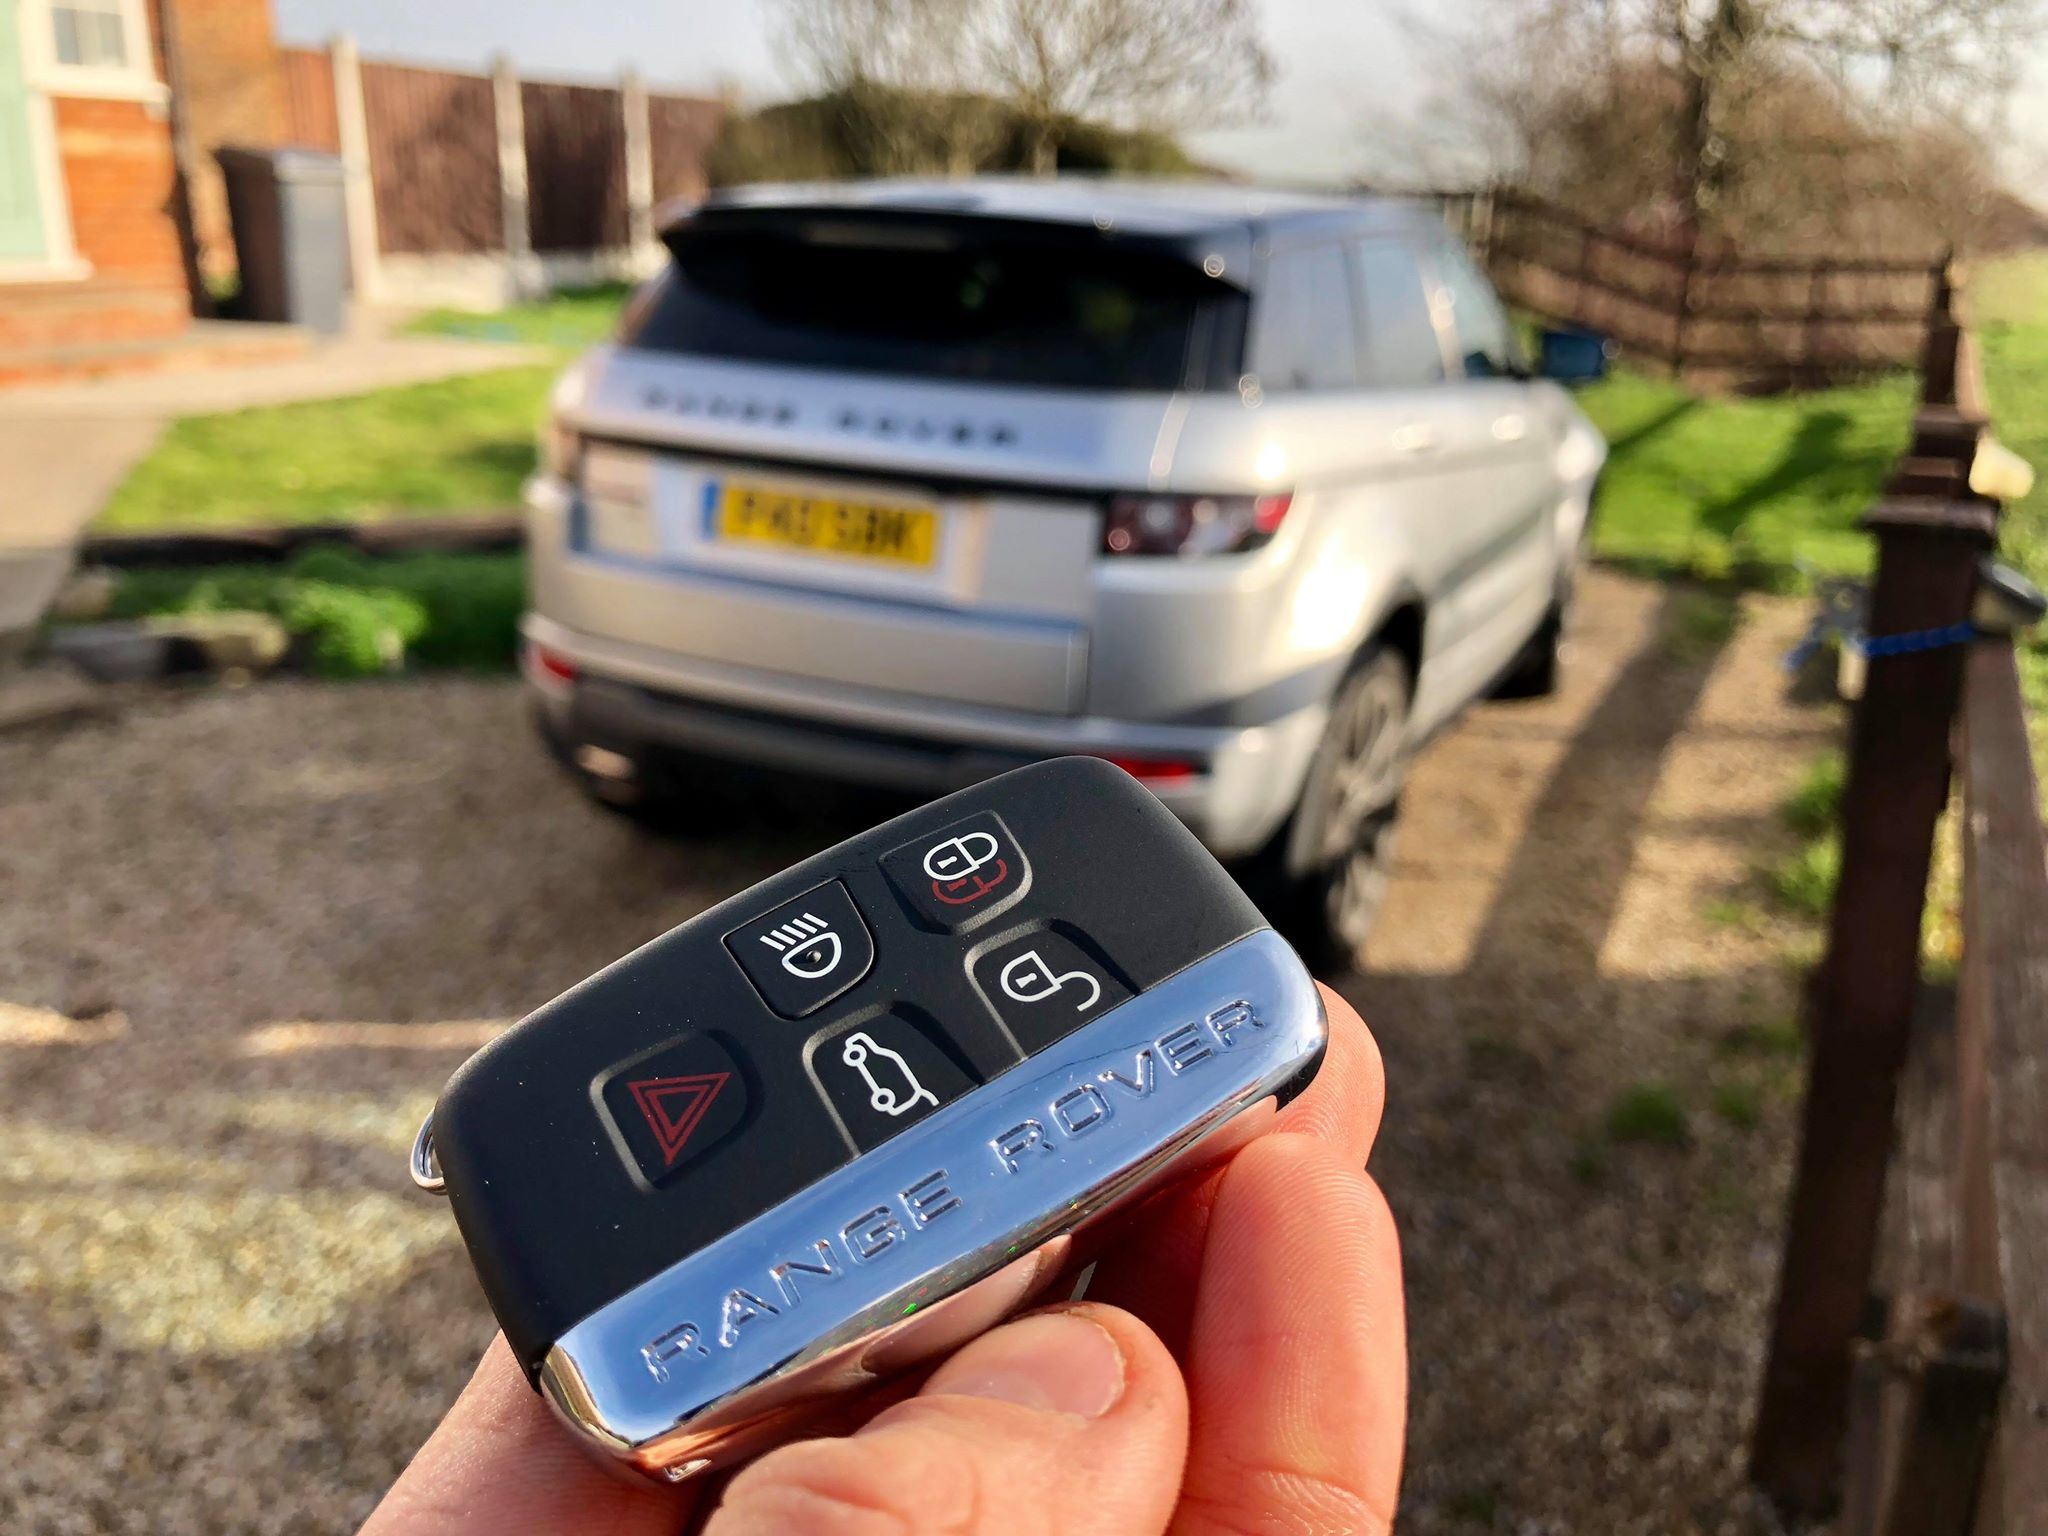 Range Rover Evoque Lost Keys